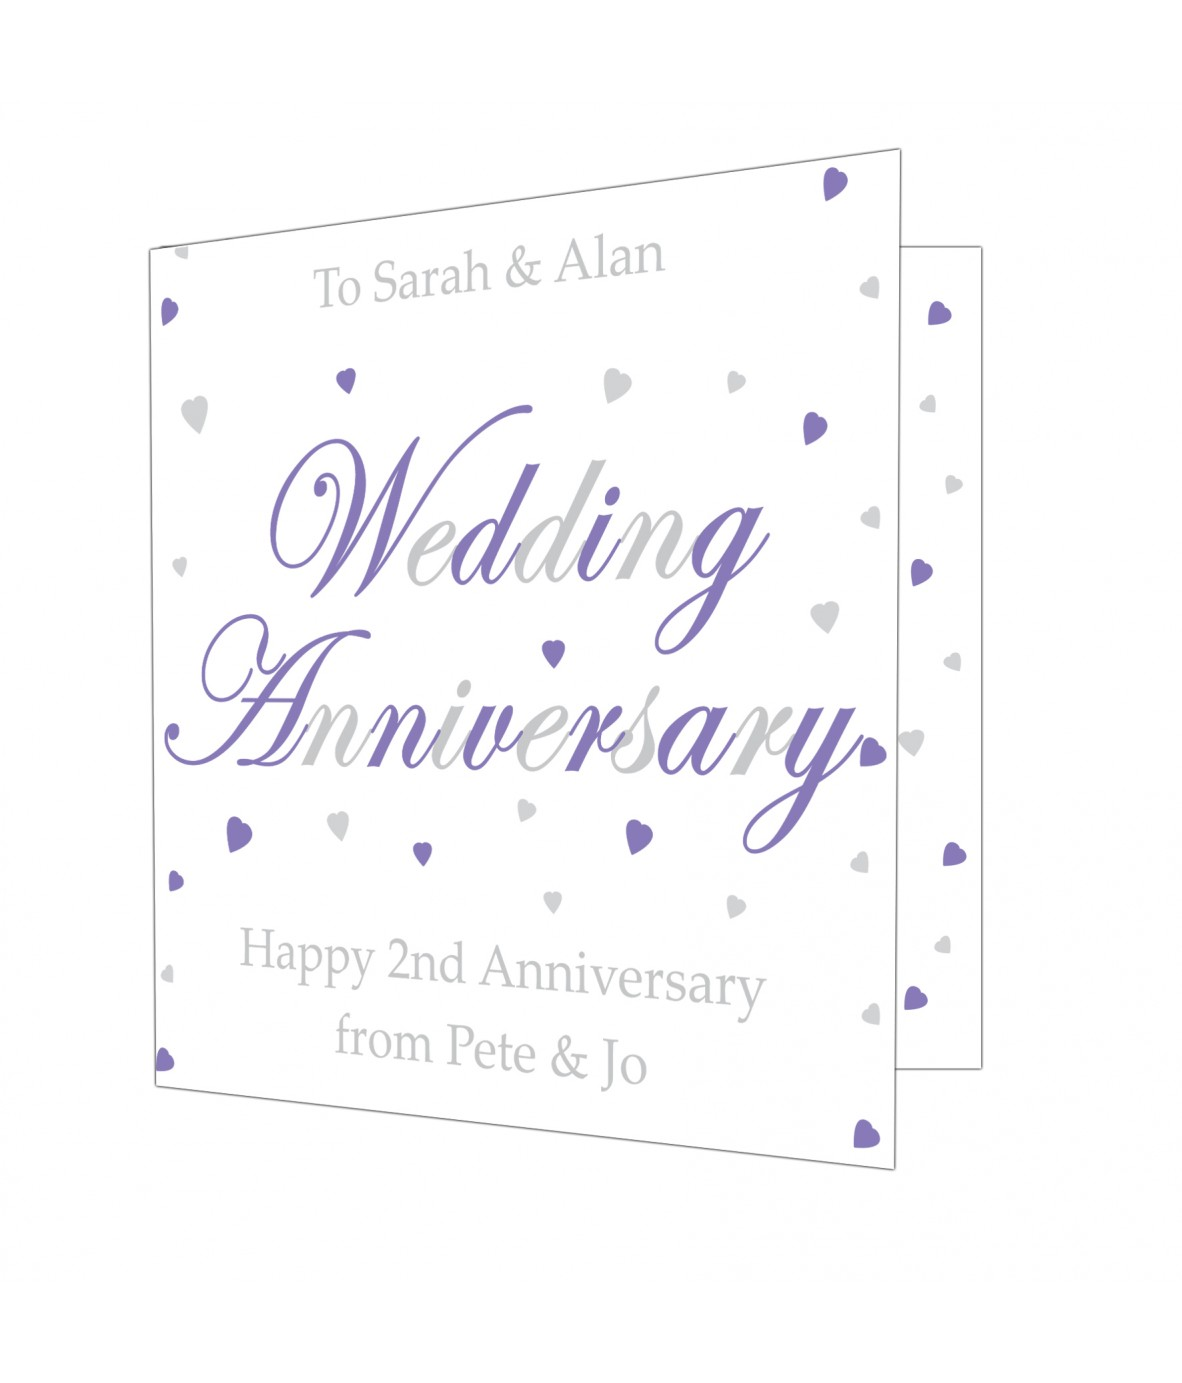 Wedding anniversary gift cards 28 images best anniversary wedding anniversary gift cards wedding anniversary gifts wedding anniversary gifts cards negle Image collections